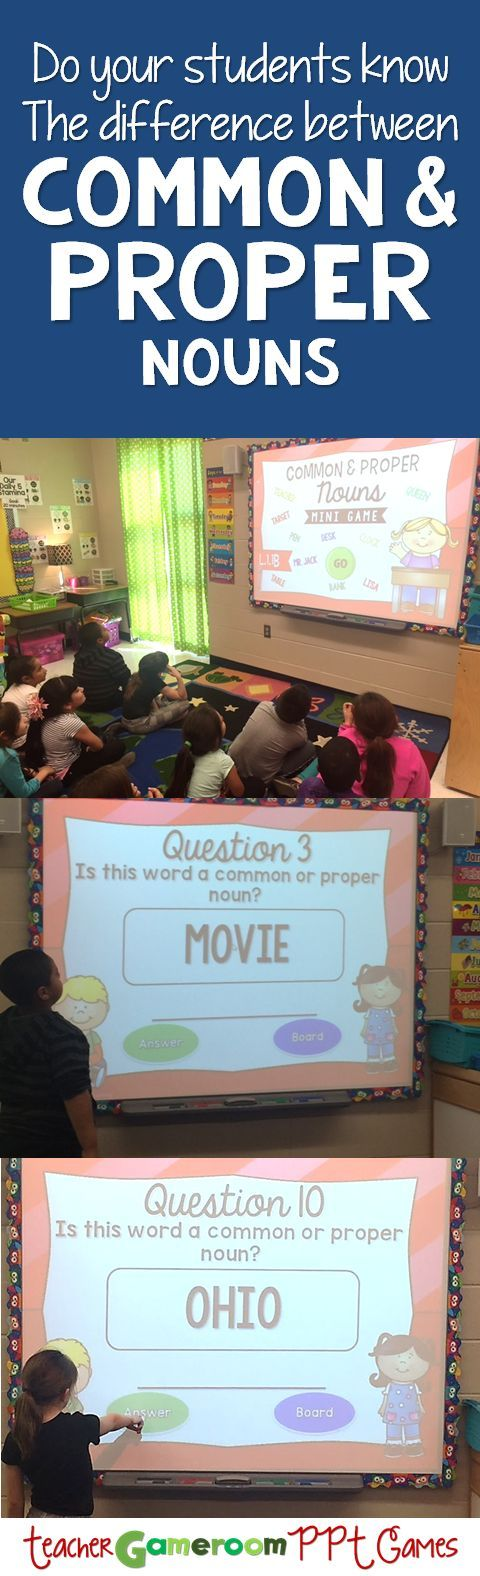 Identify common and proper nouns in the fun mini powerpoint game for smartboards.